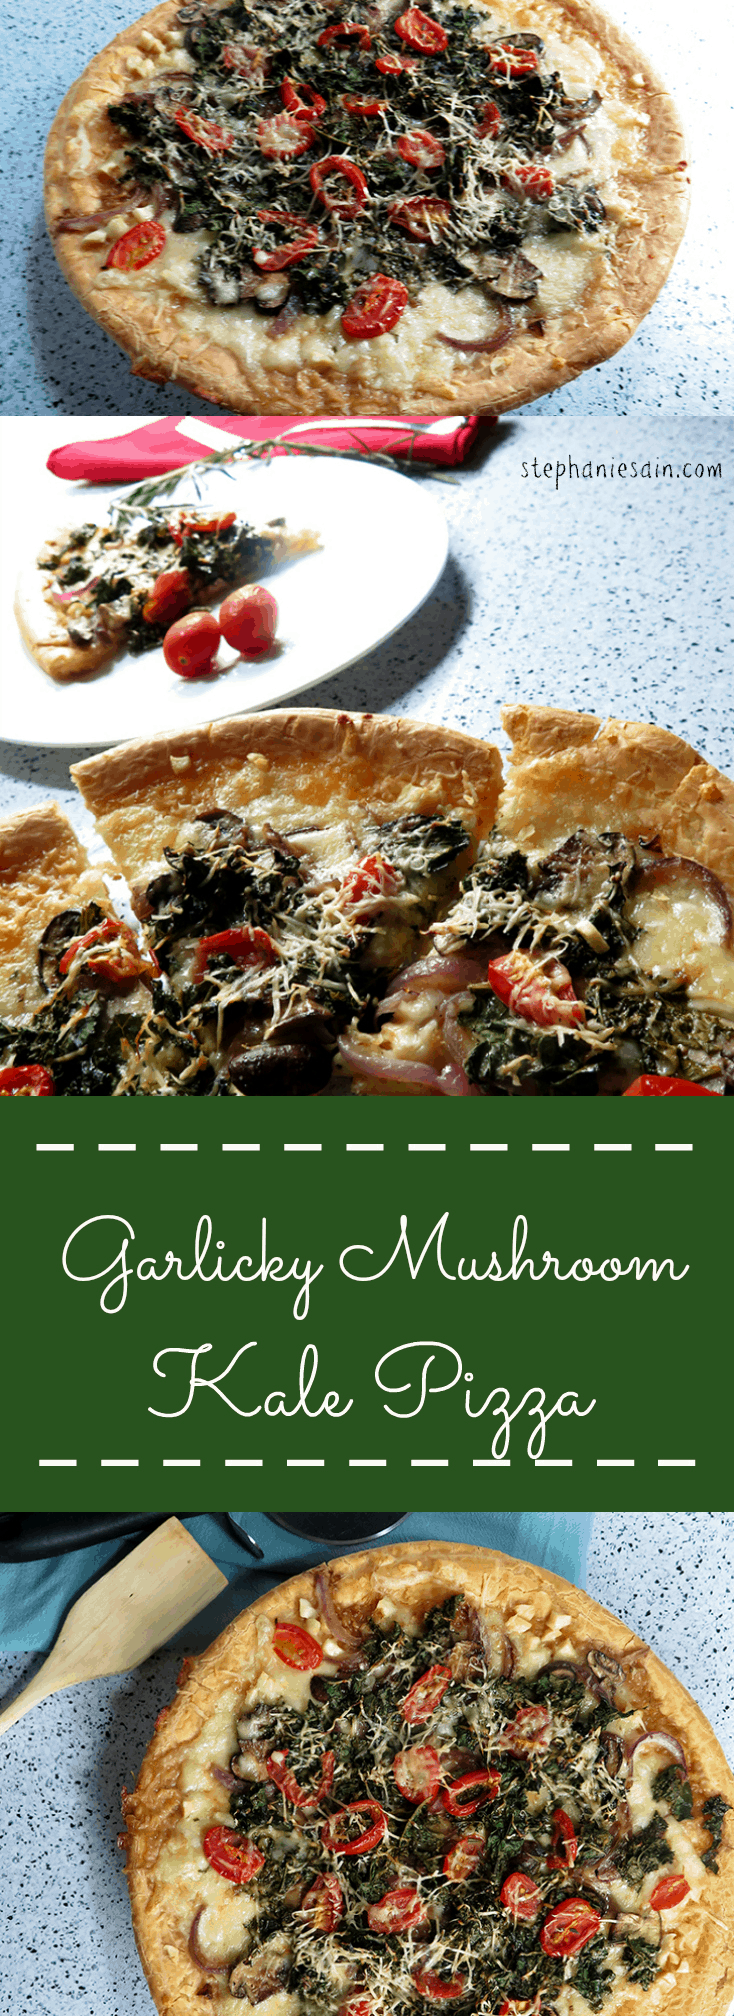 Garlicky Mushroom Kale Pizza is a great way to eat Kale. It's a healthier pizza prepared on a gluten free crust.(vegetarian)